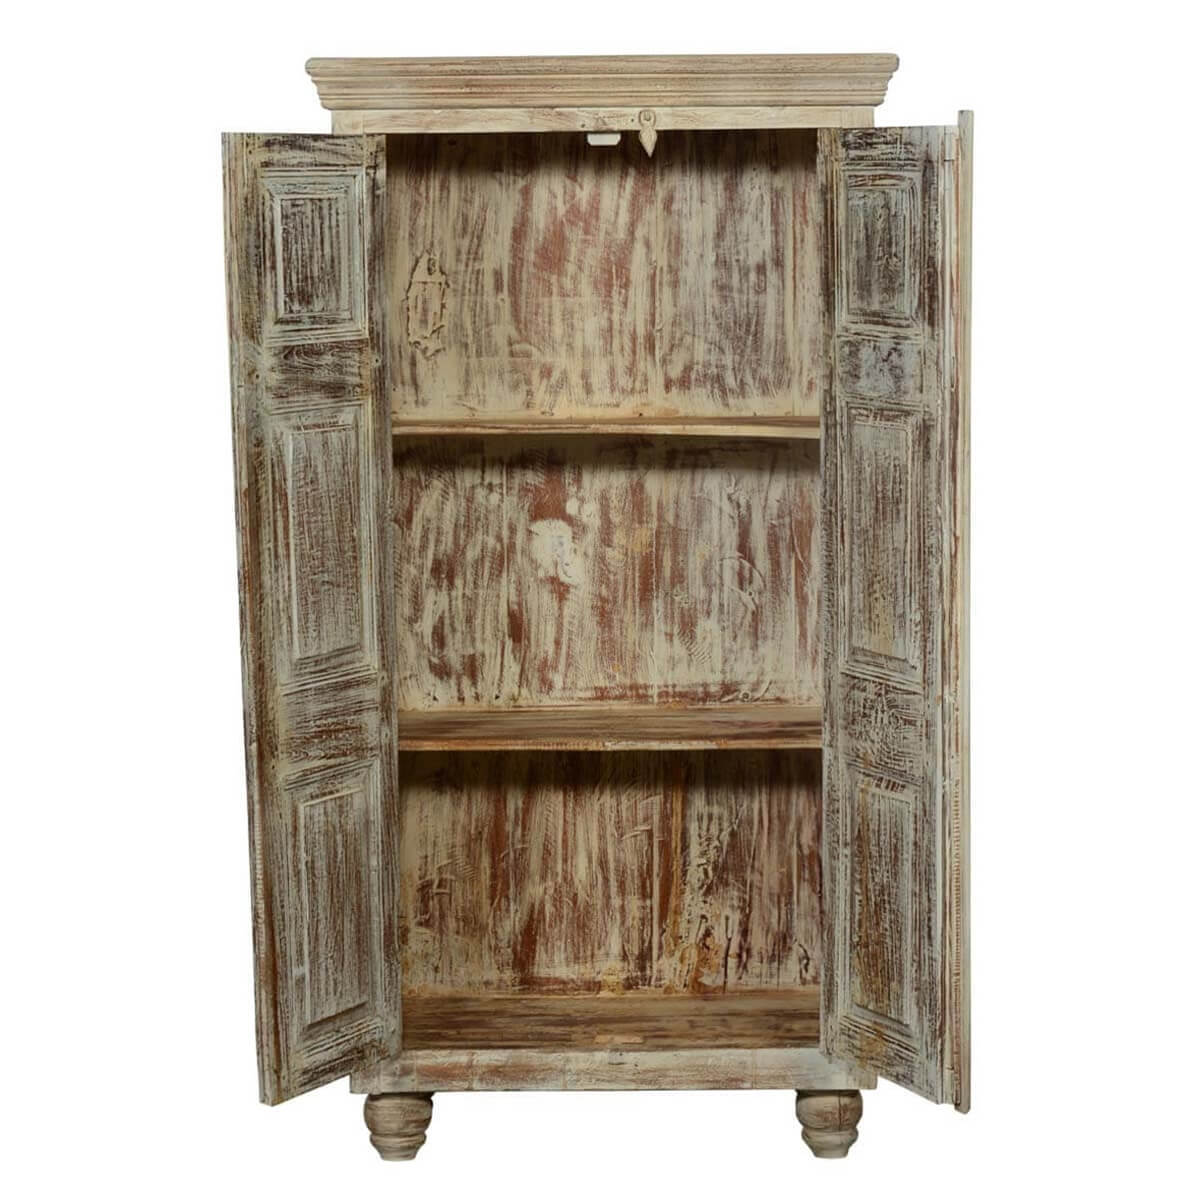 Distressed Bedroom Sets Bedroom Cupboards With Mirror Sliding Doors Bedroom Colour As Per Vastu Shabby Chic Bedroom Sets: Duson Rustic Distressed Solid Wood Armoire